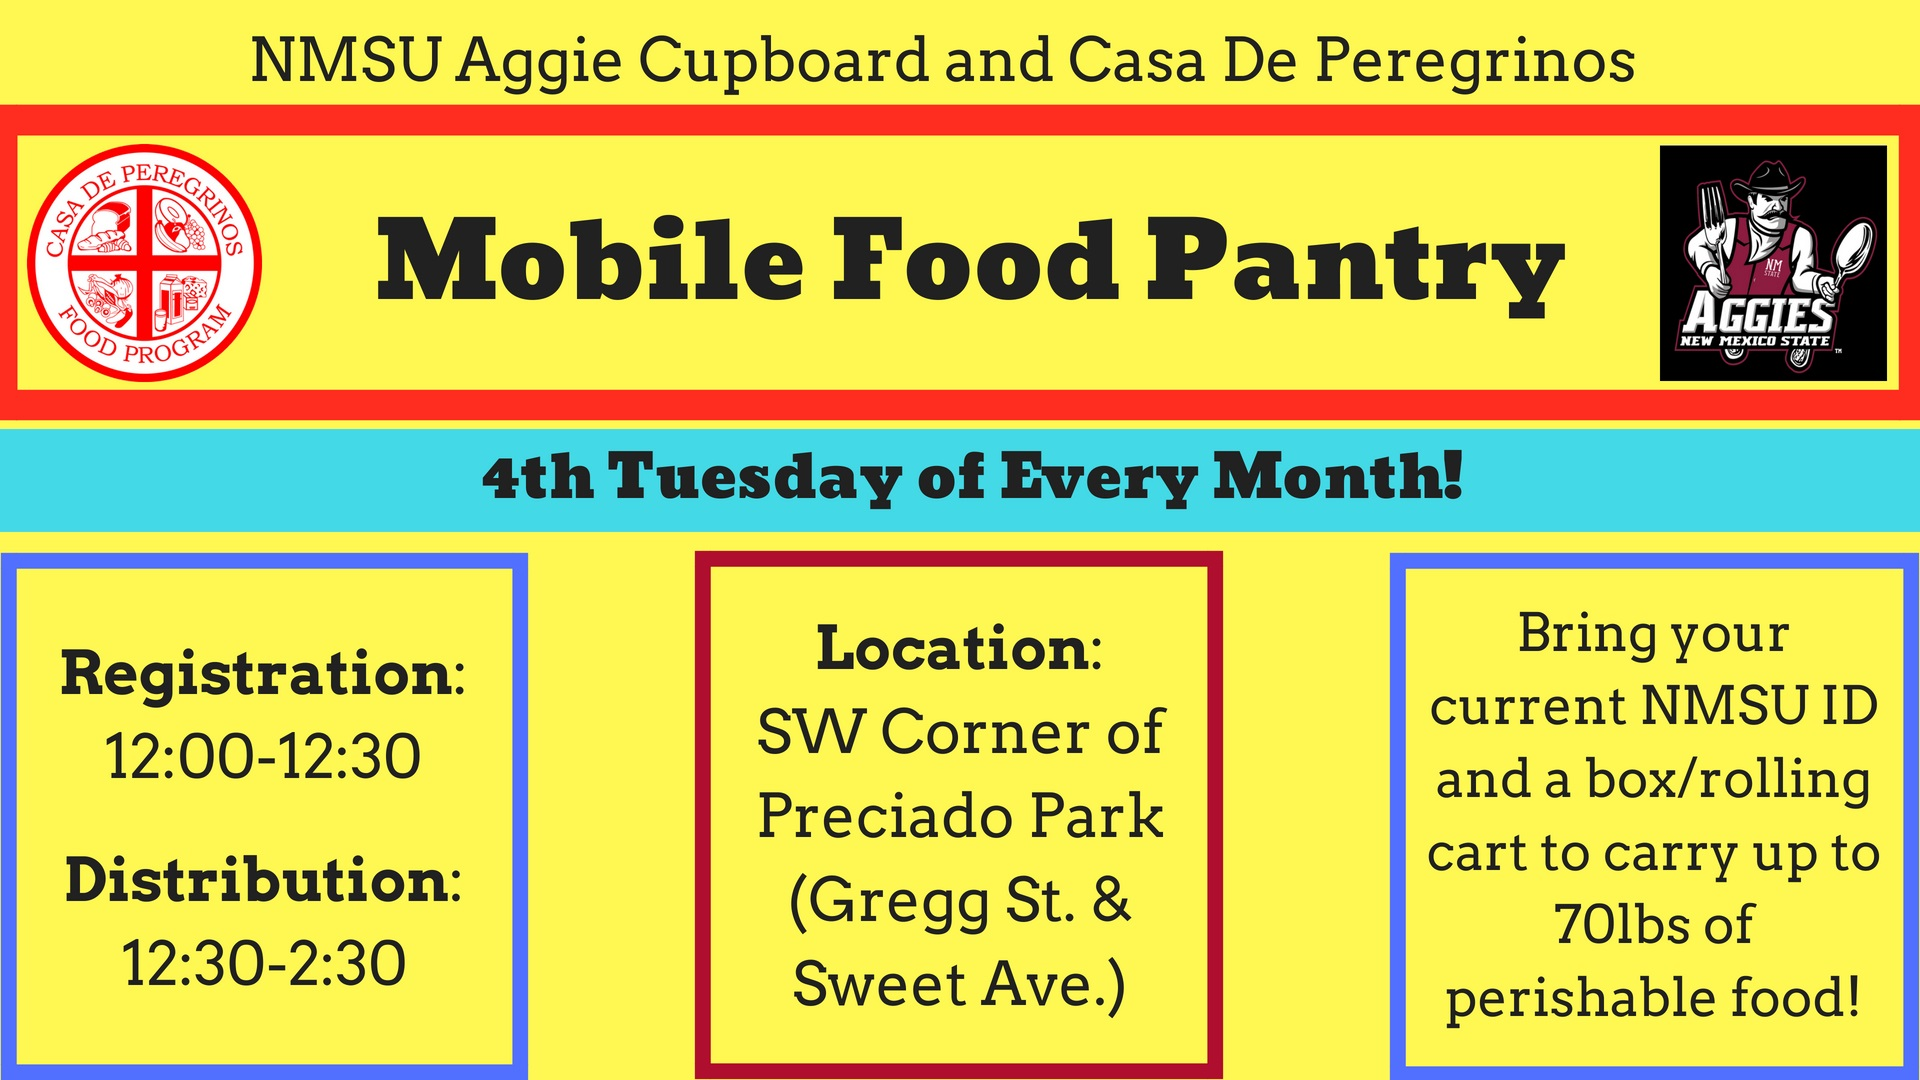 Mobile-Food-Pantry-Facebook-Poster-Current.jpg